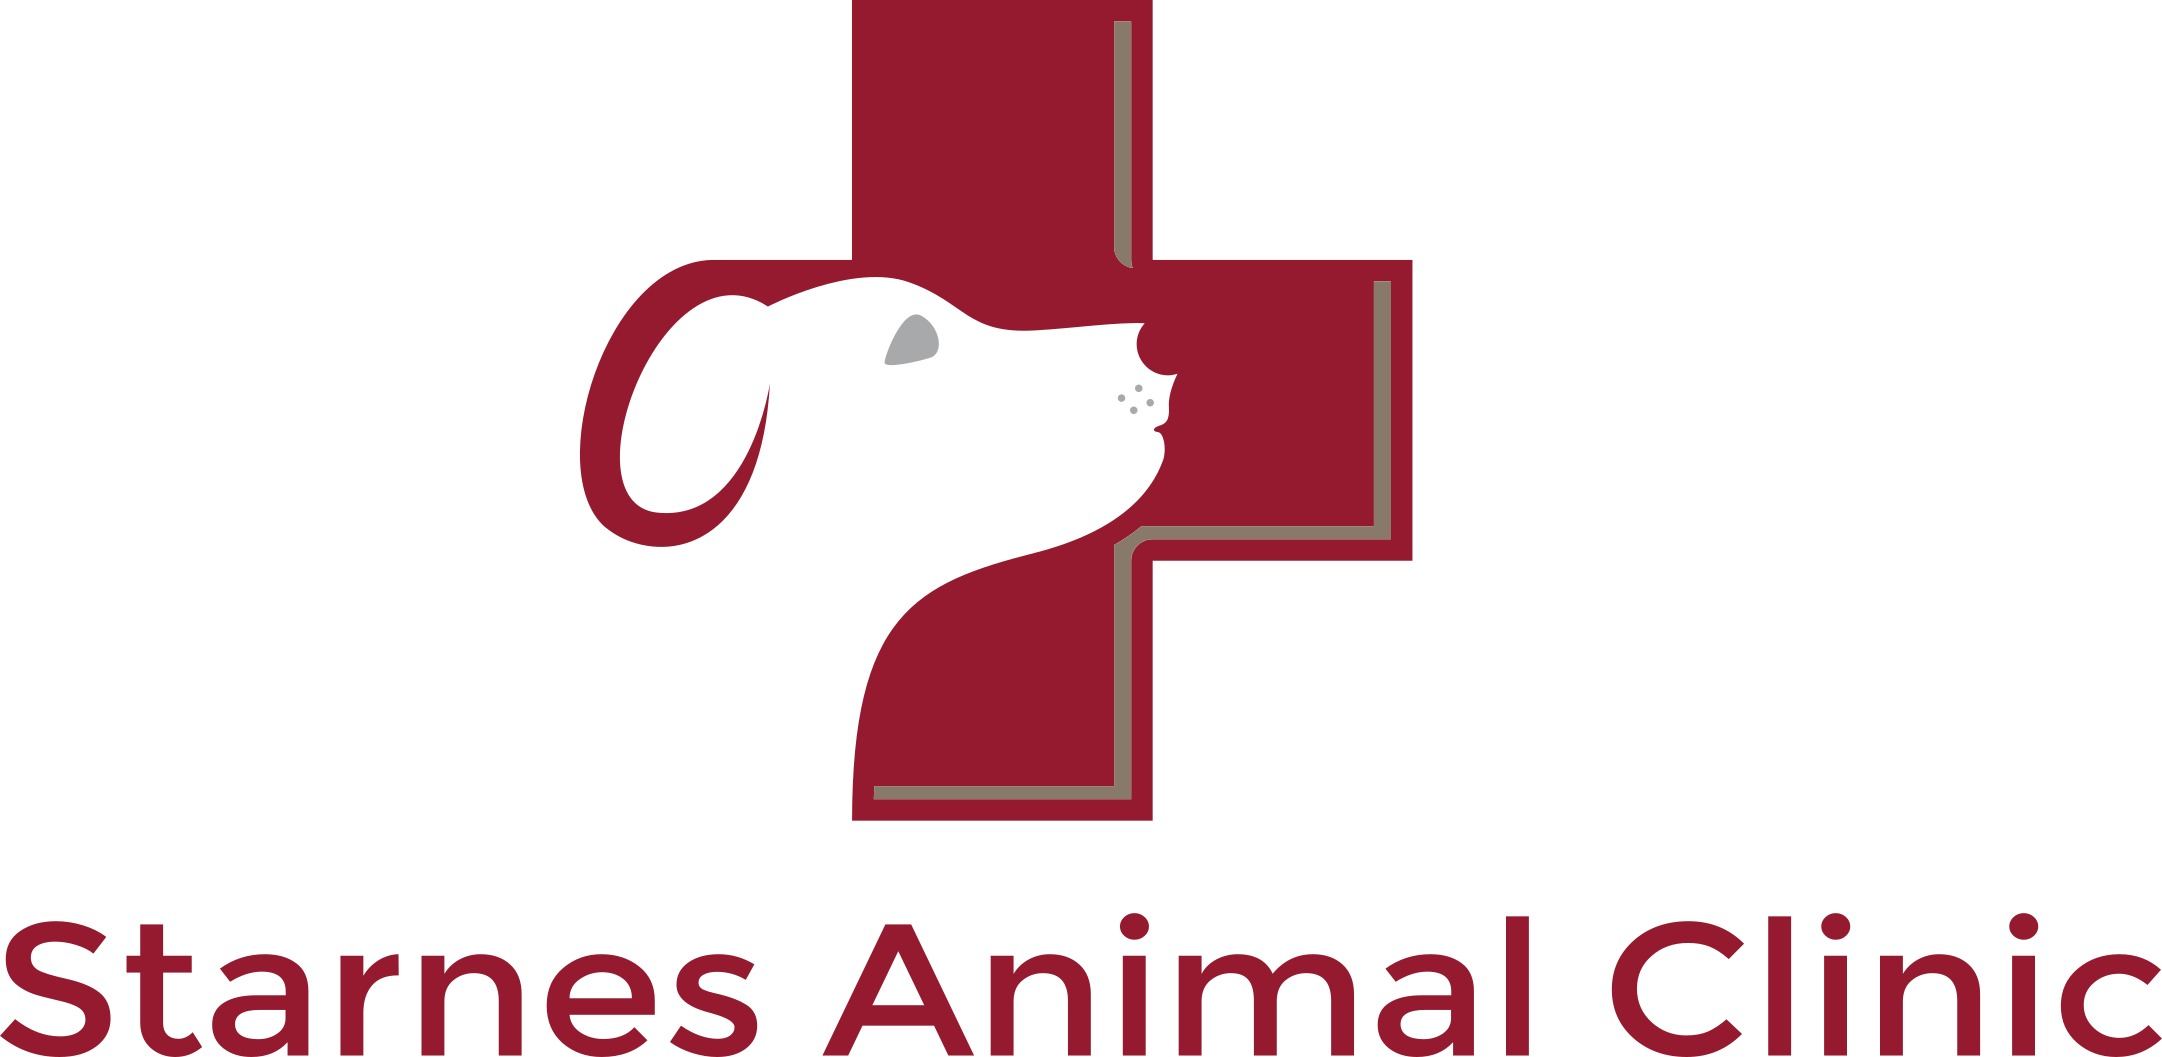 Starnes Animal Clinic - click to visit their website